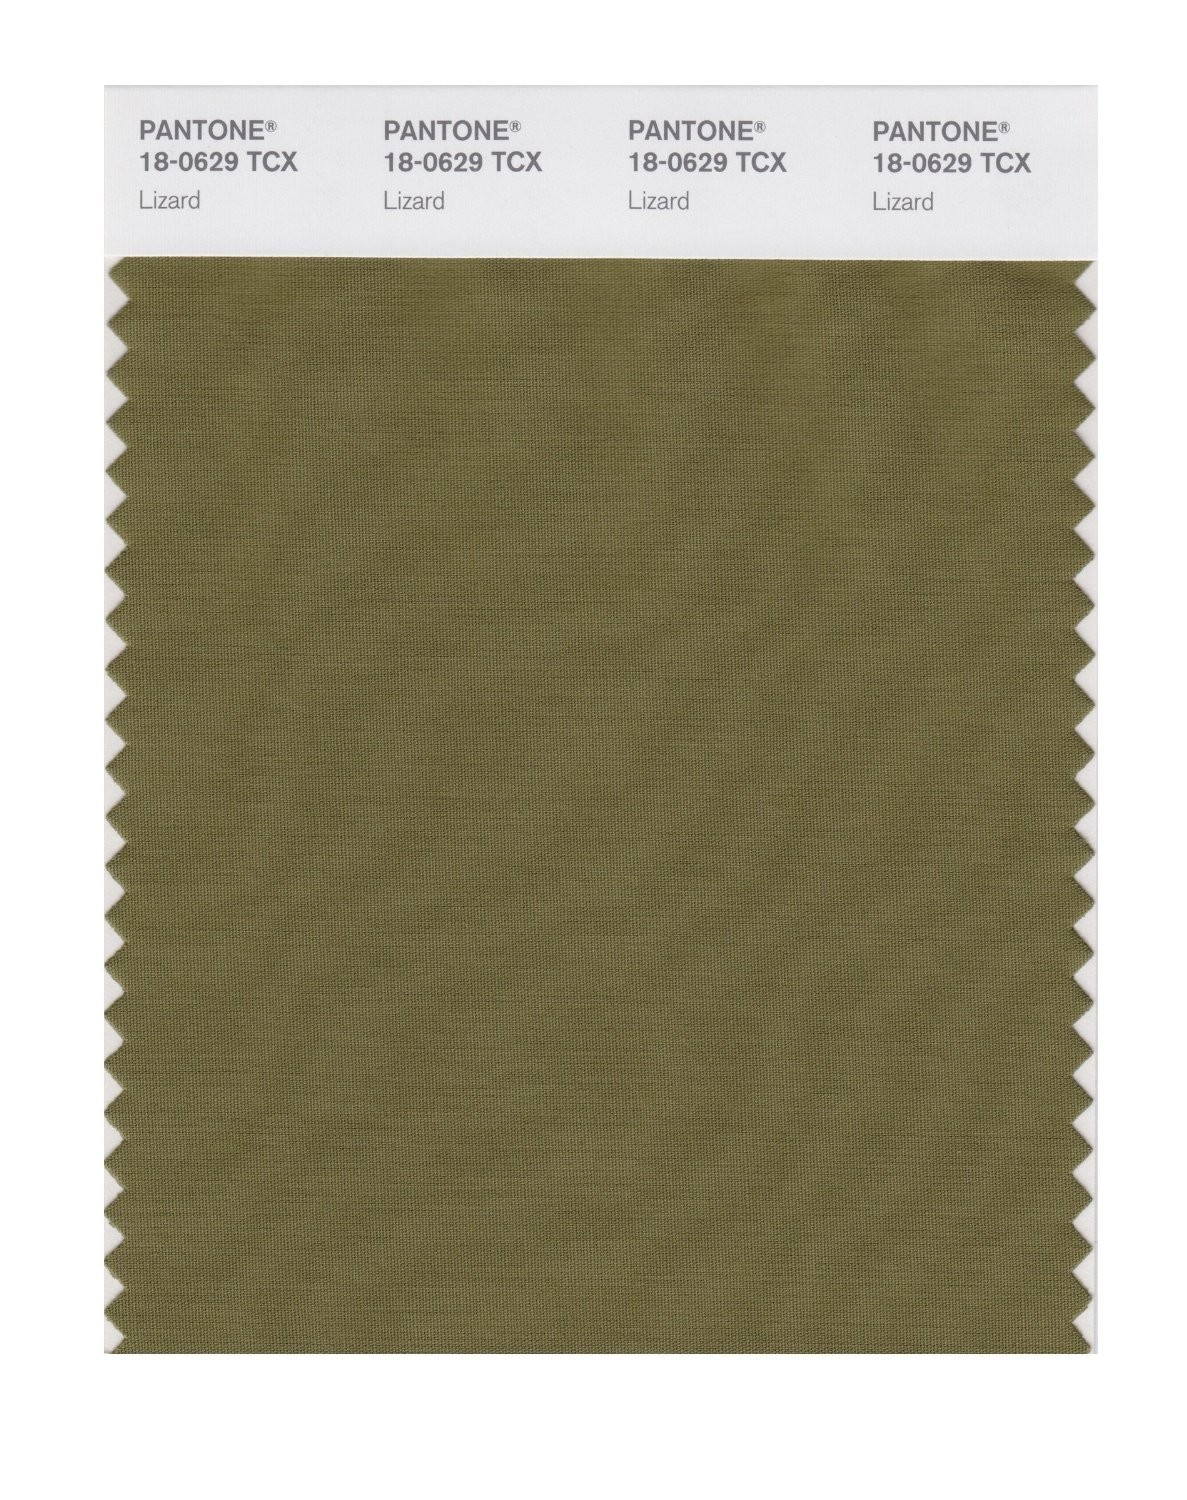 Pantone 18-0629 TCX Swatch Card Lizard